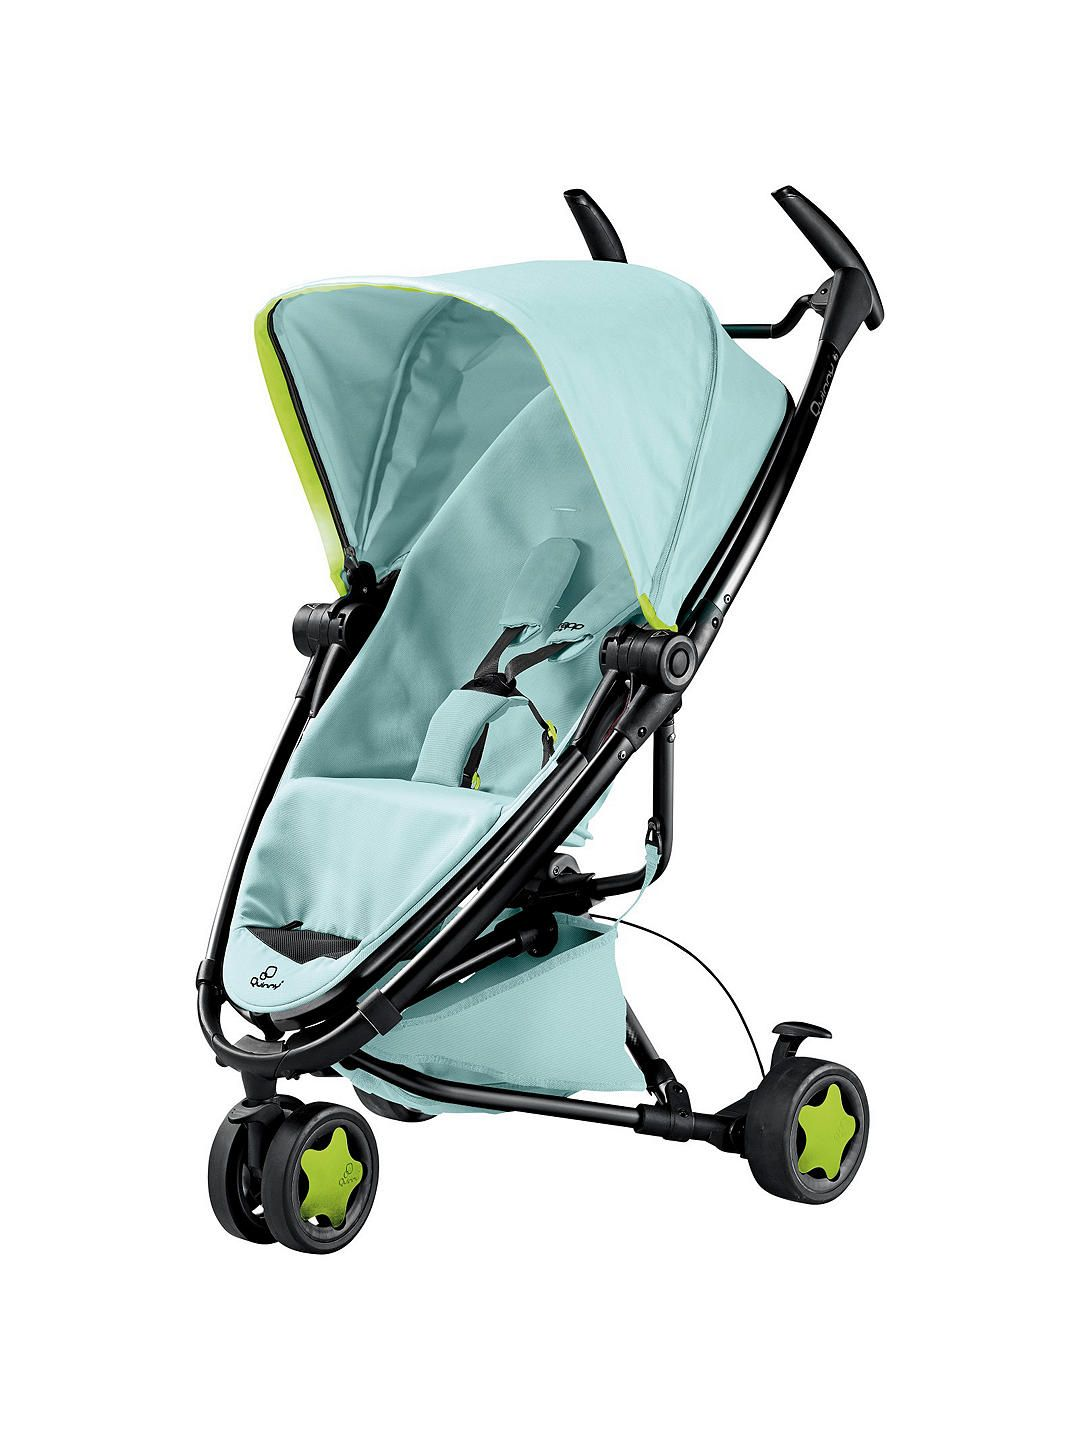 Pin by Amy Williams on Design Quinny, Stroller, Baby